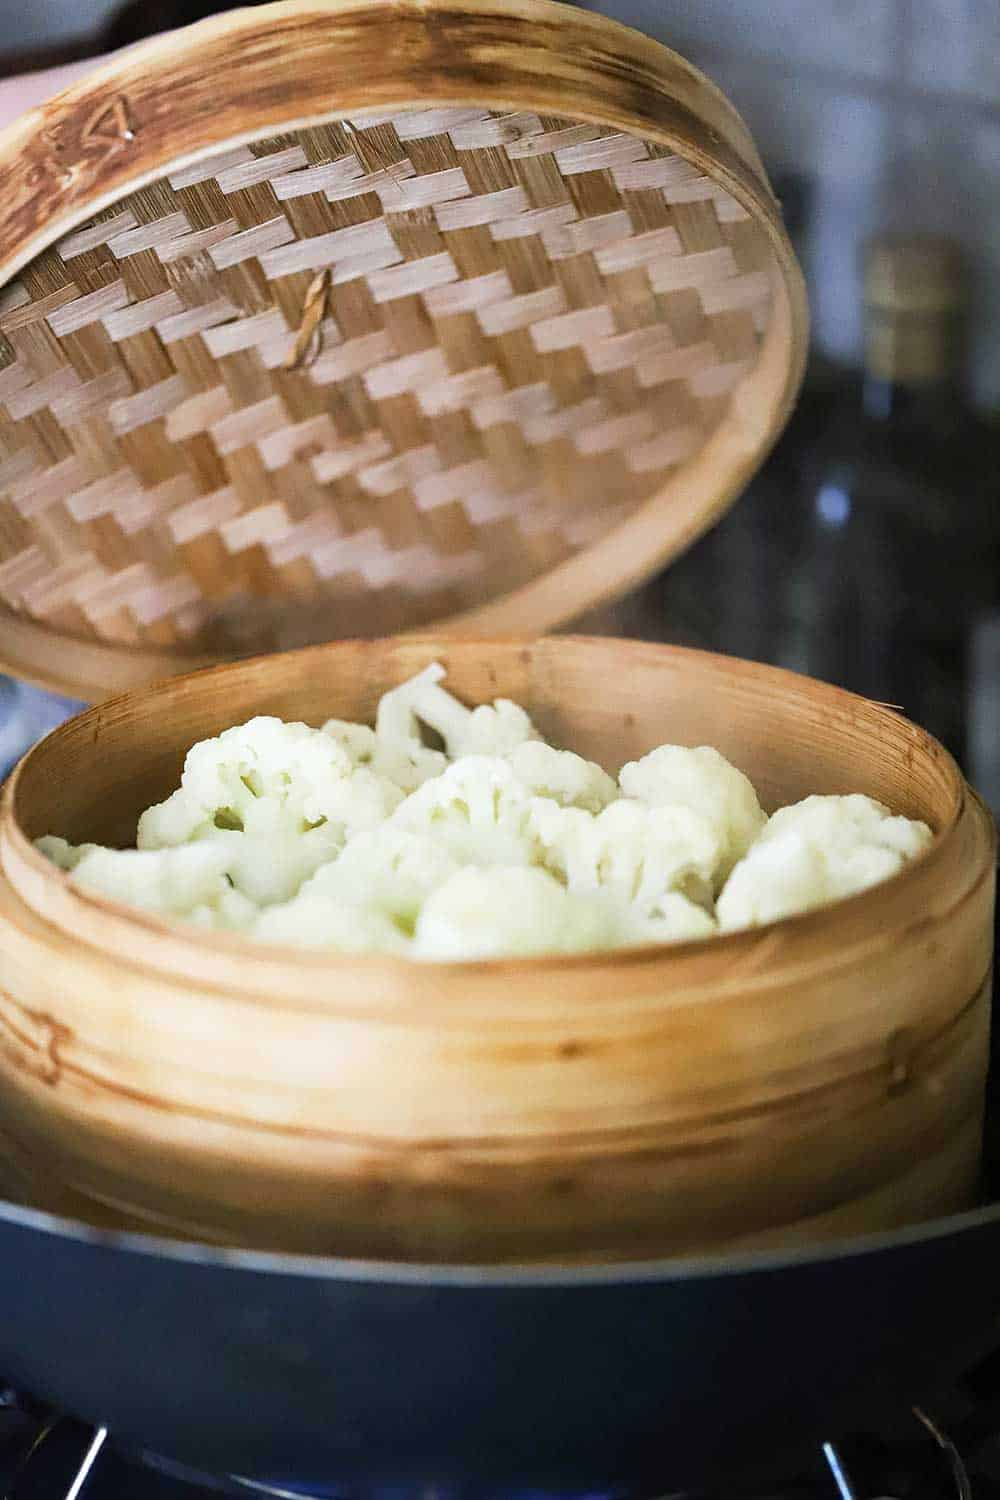 A lid of a bamboo steamer being lifted up to reveal cauliflower florets that have been steamed.